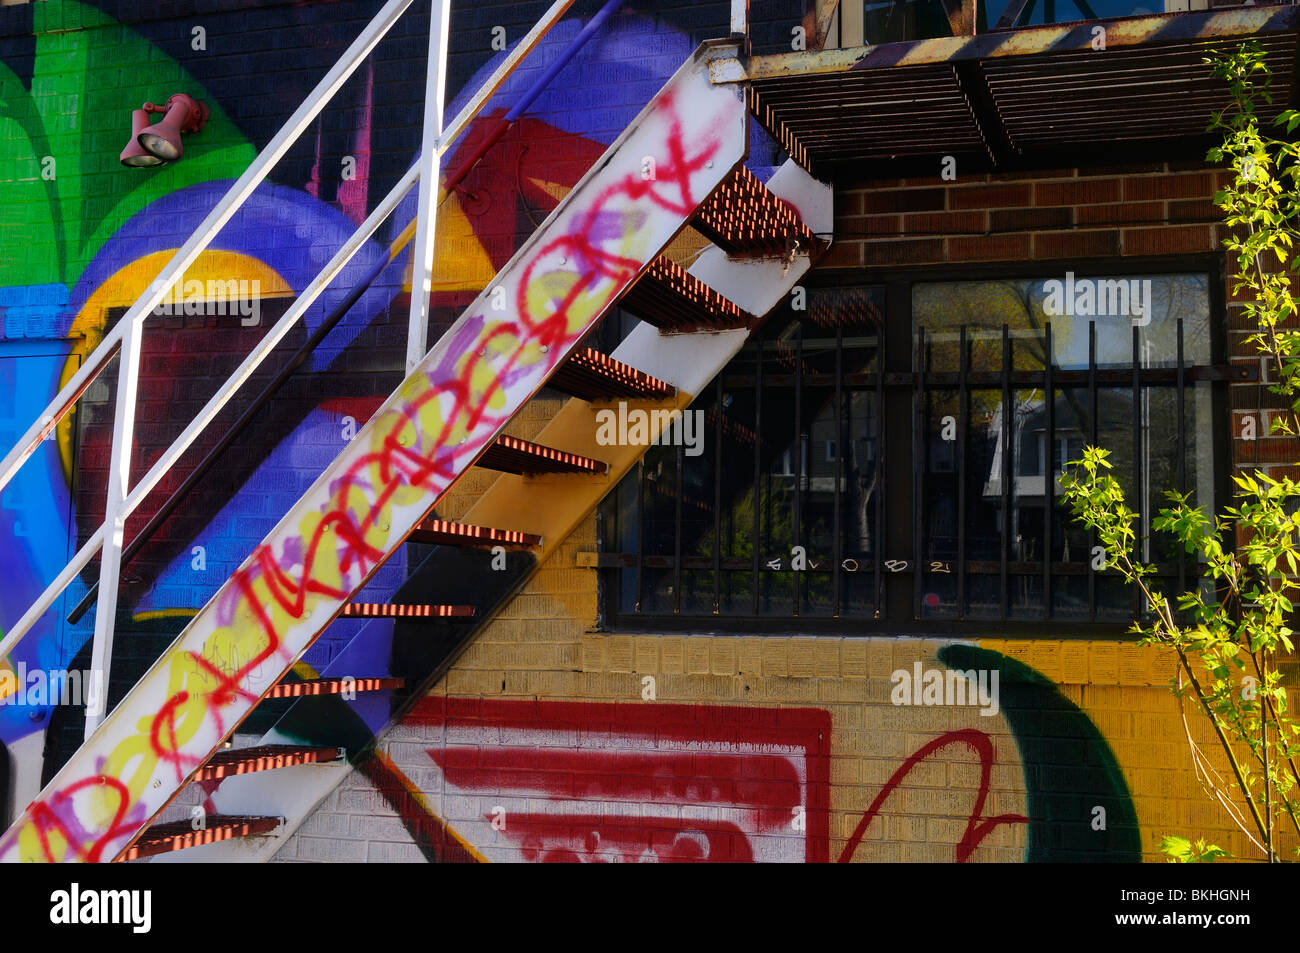 Heavily tagged staircase and graffiti on the back of a building at Keele subway station Toronto Stock Photo